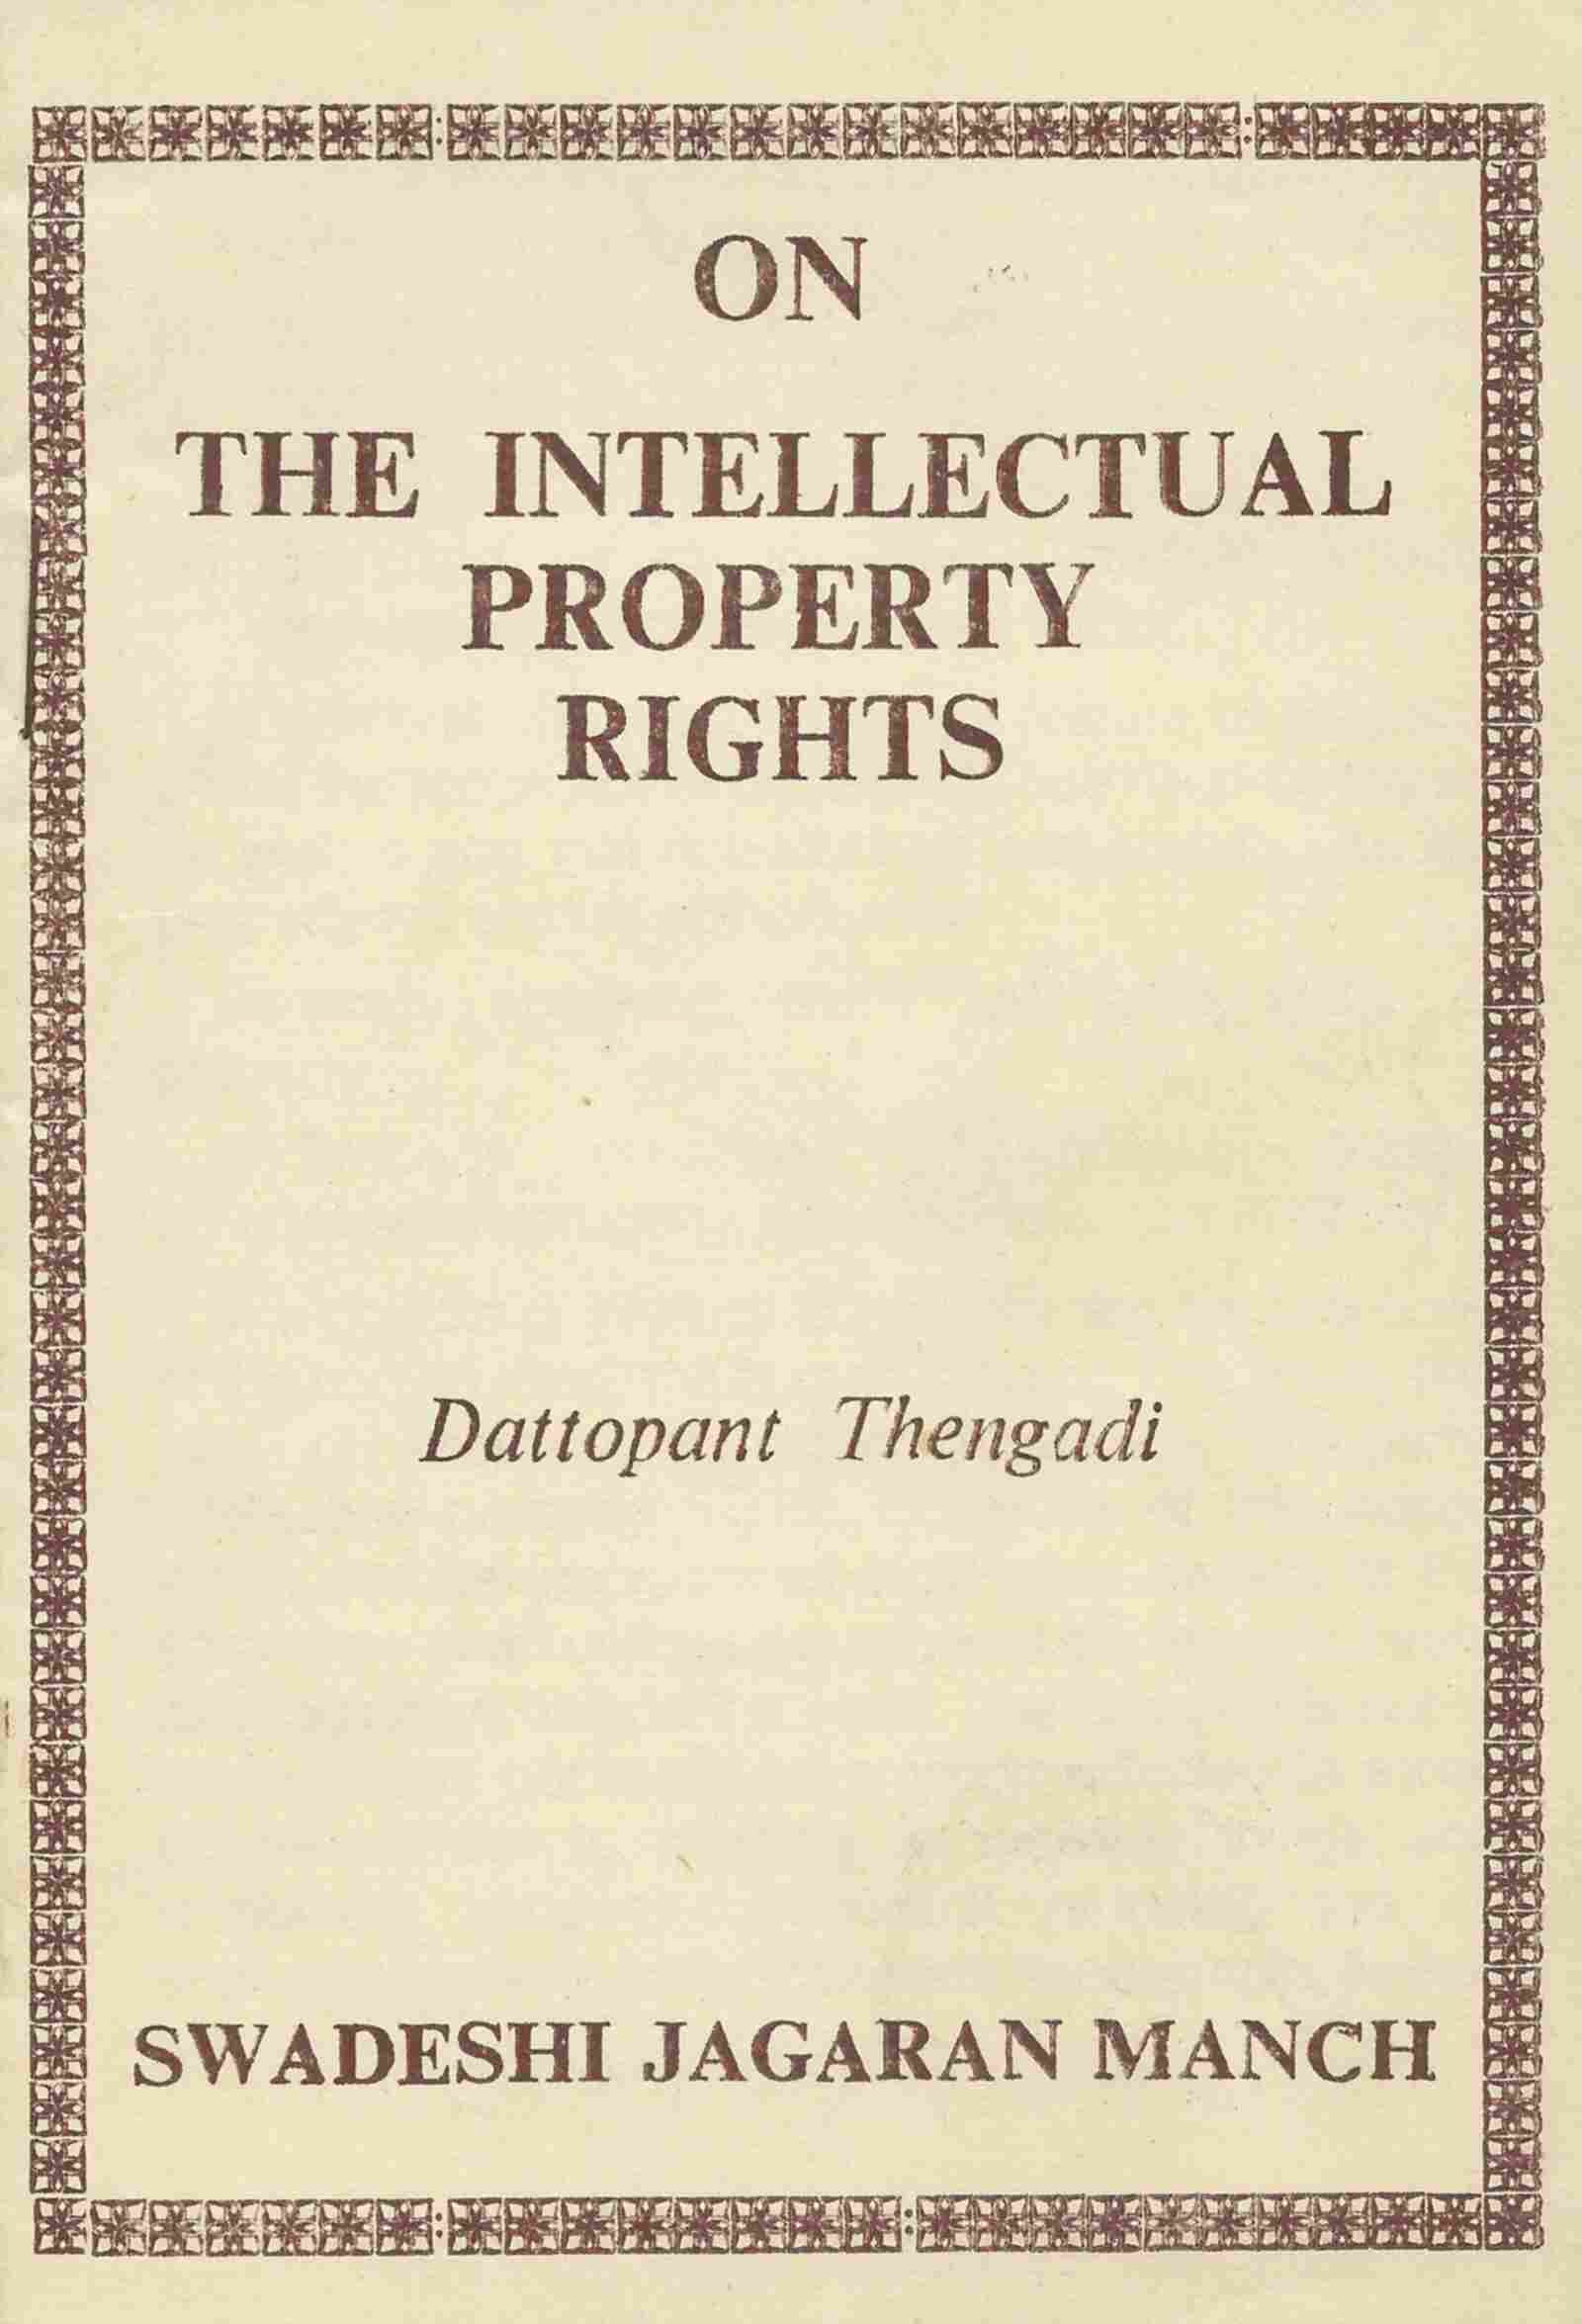 On The Intellectual Property Rights